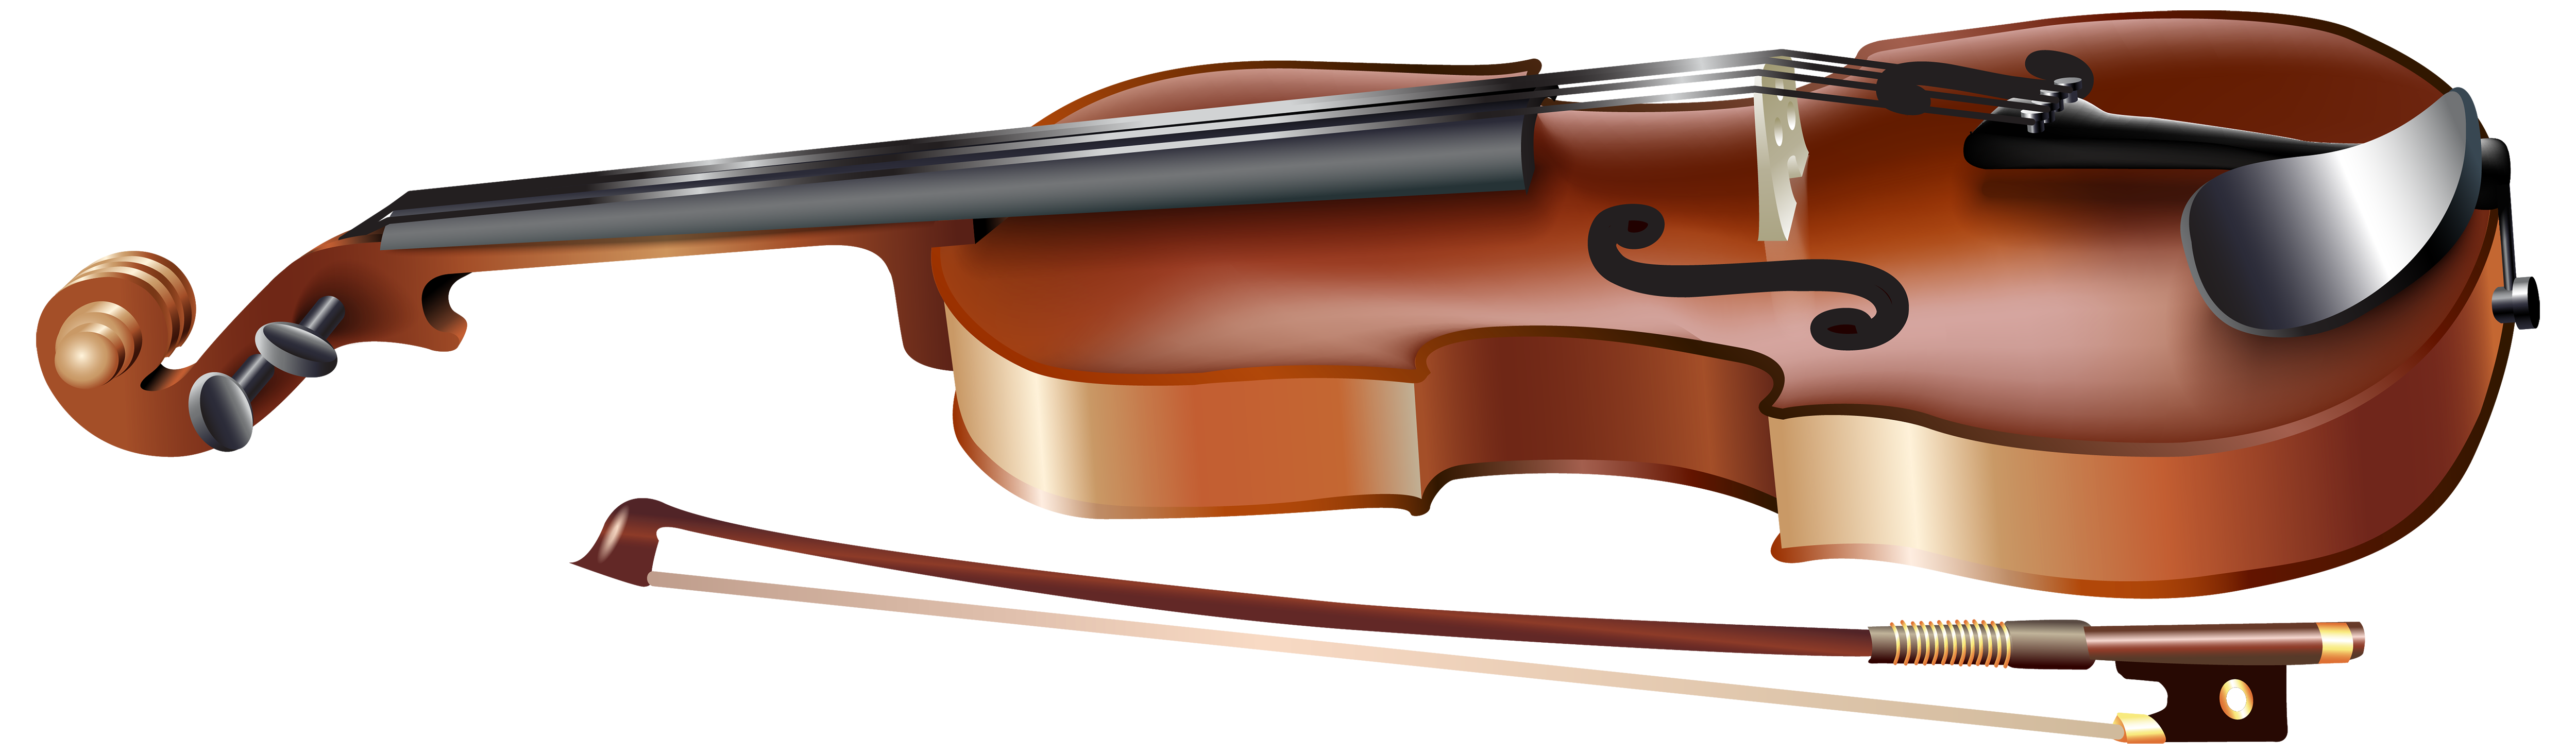 Violin bow png. With clipart best web